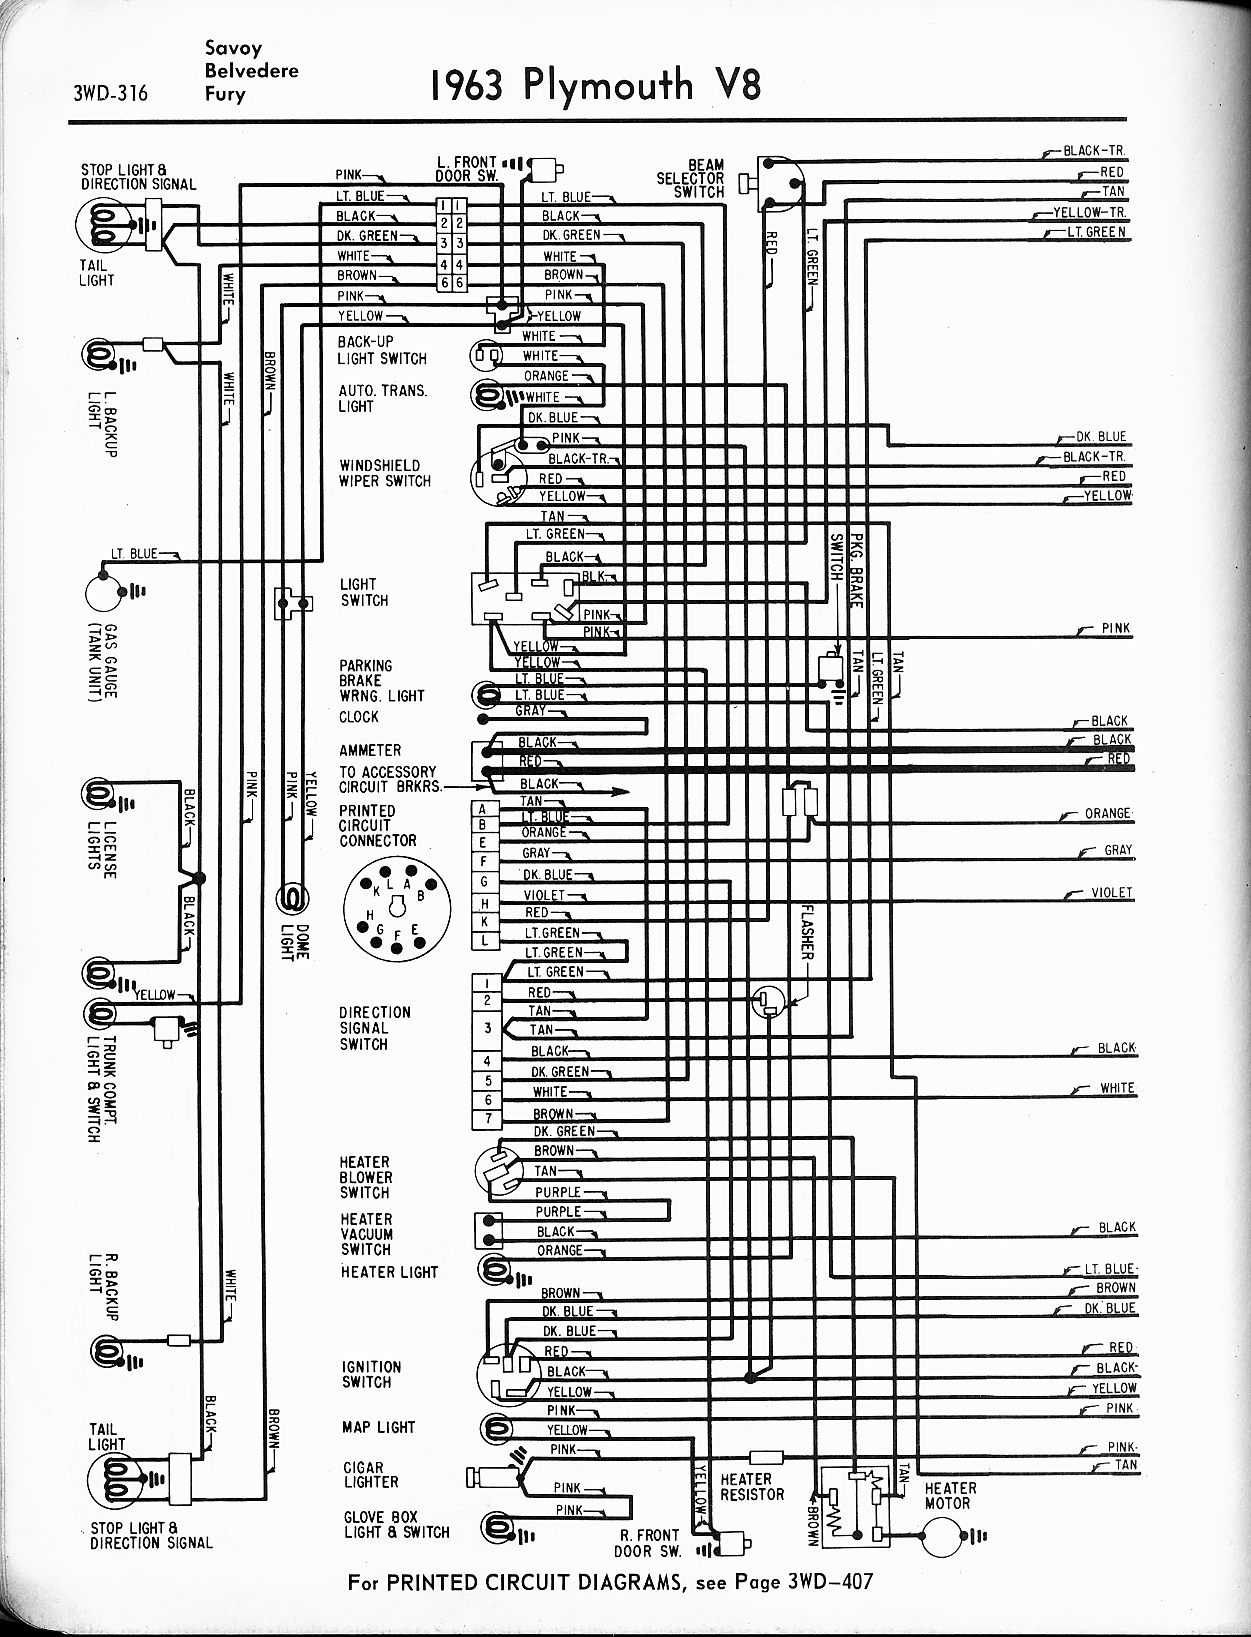 MWire5765 316 3800 series 2 wiring diagram gm ecu pinout \u2022 wiring diagrams j 1965 pontiac grand prix wiring diagram at crackthecode.co